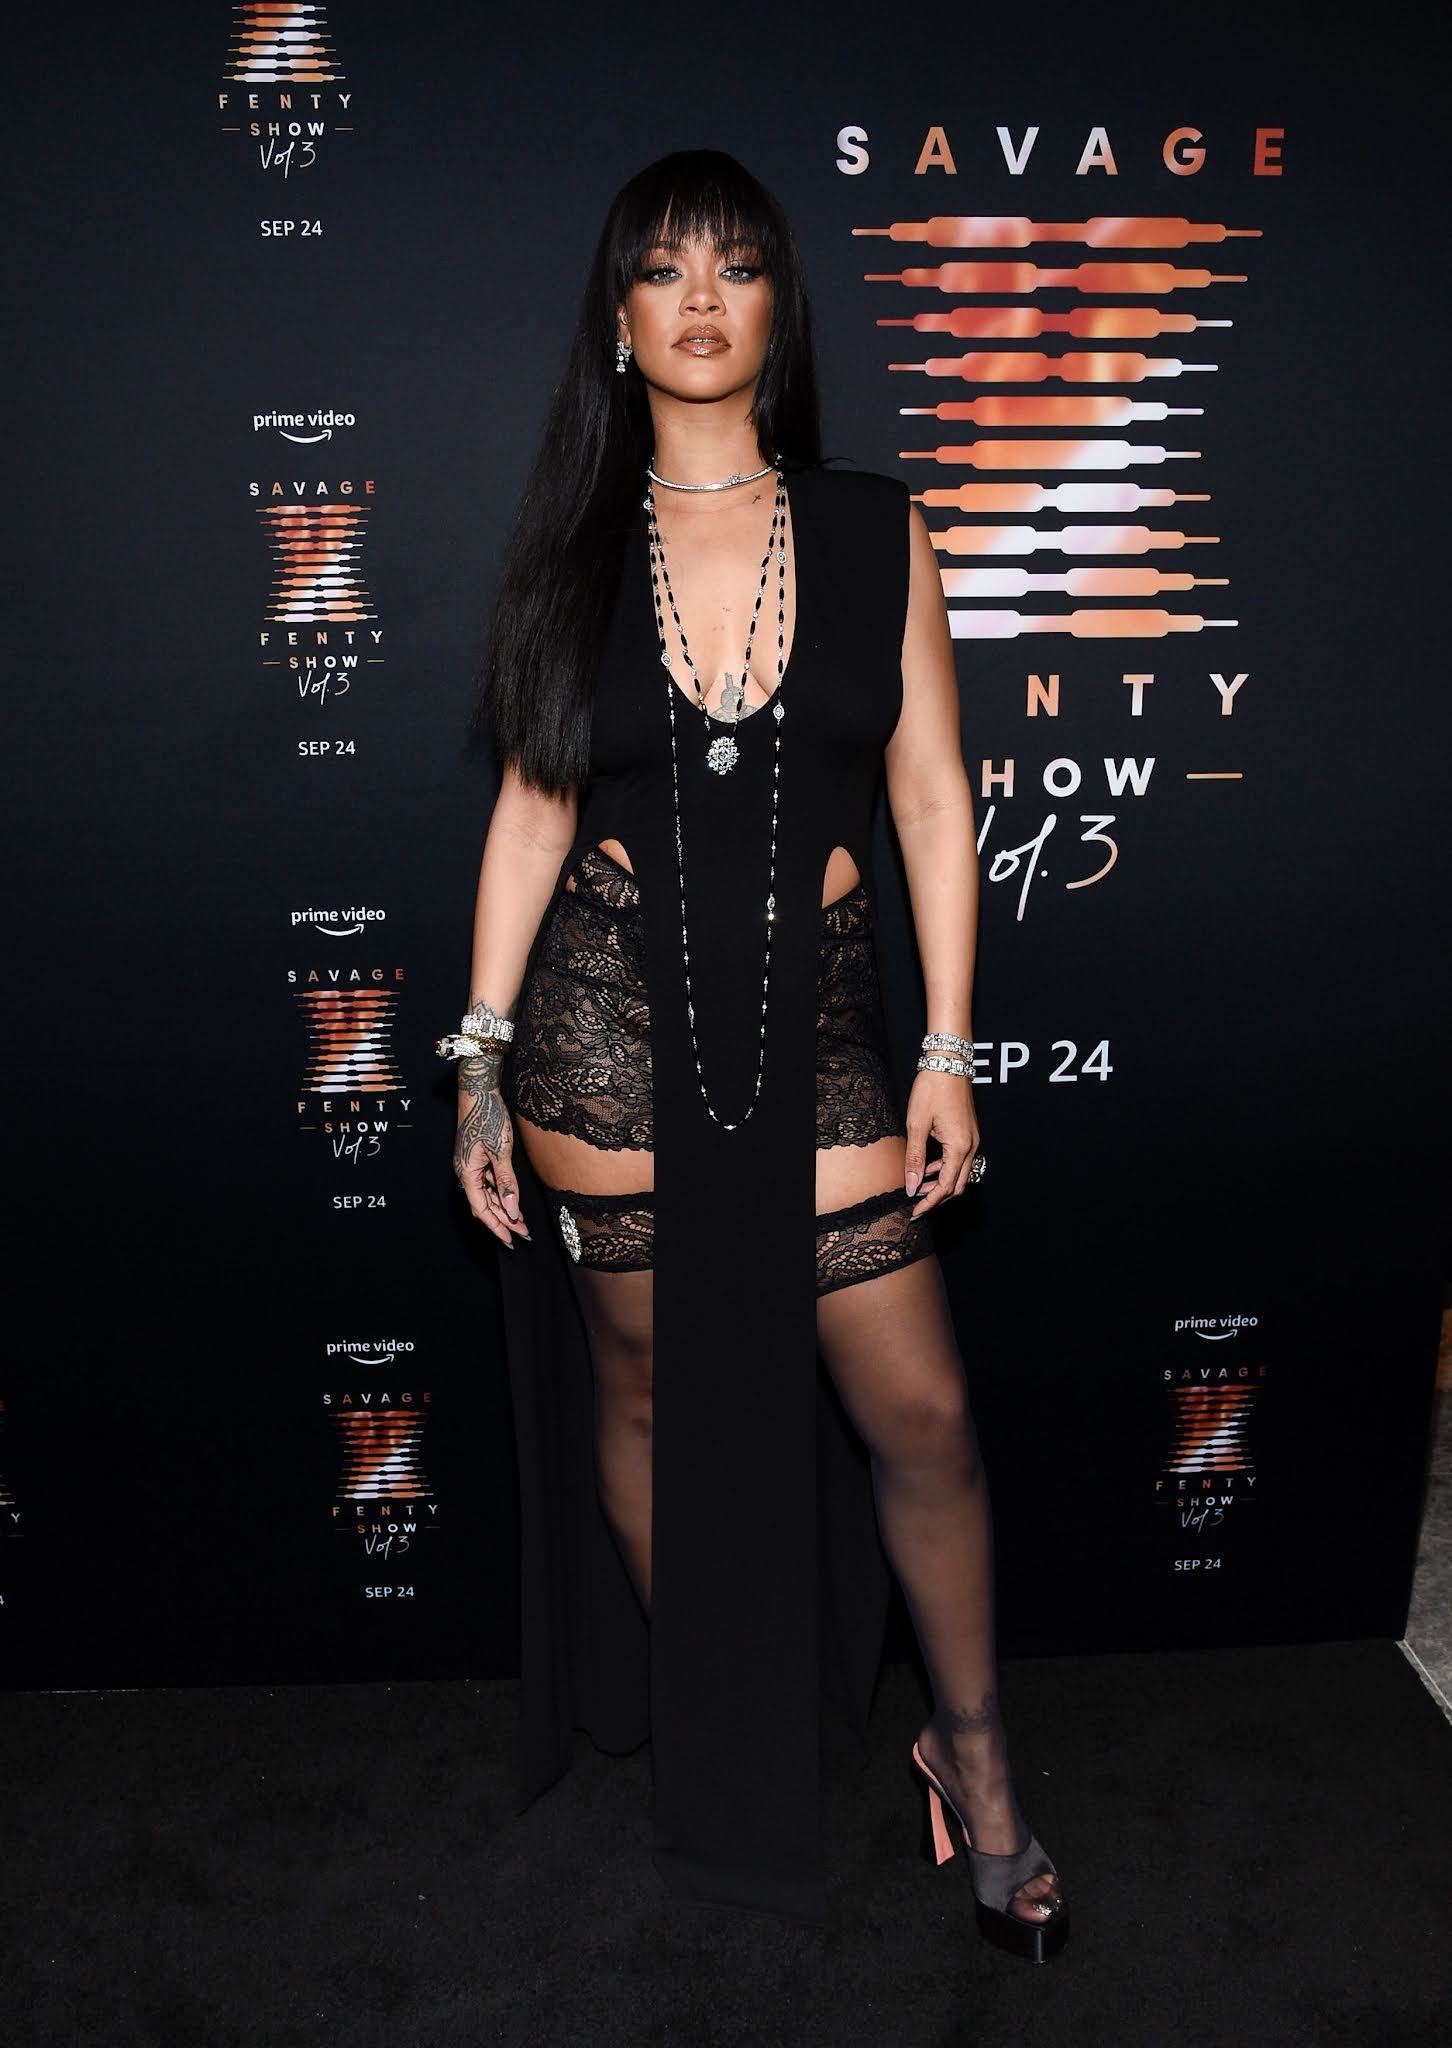 Rihanna in sheer lace shorts and stockings at Savage X Fenty show premiere in NYC